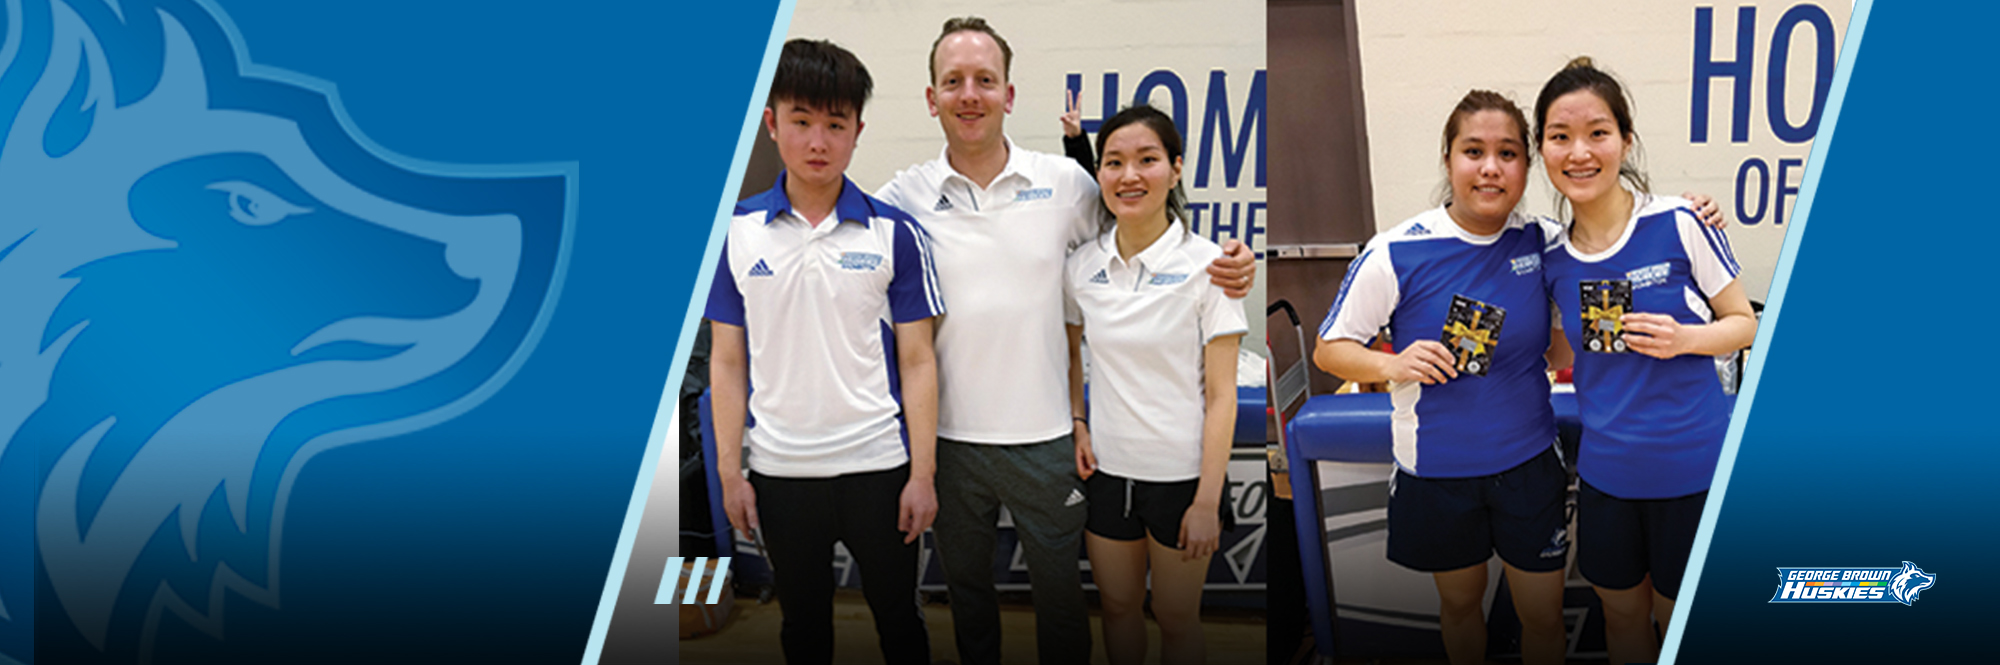 CURRENT, FORMER HUSKIES SHINE AT GEORGE BROWN'S ANNUAL KIM NG OPEN INVITATIONAL